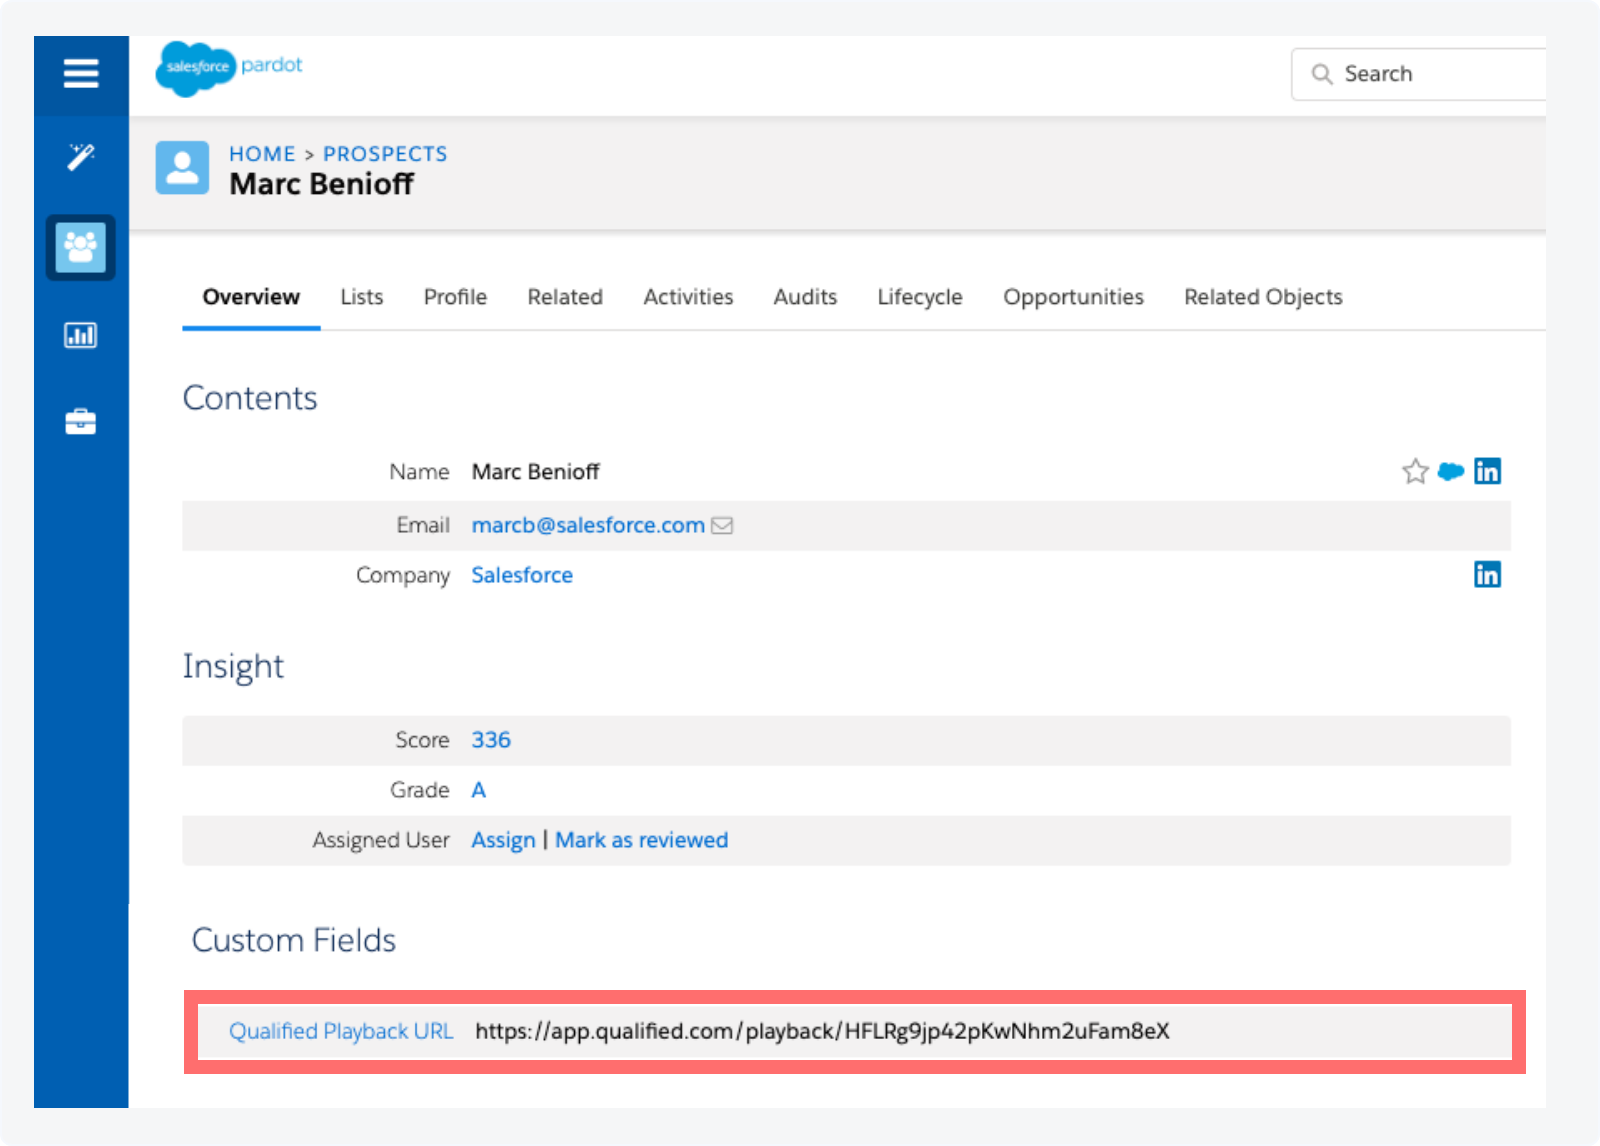 The Qualified playback URL added as a custom field in Pardot